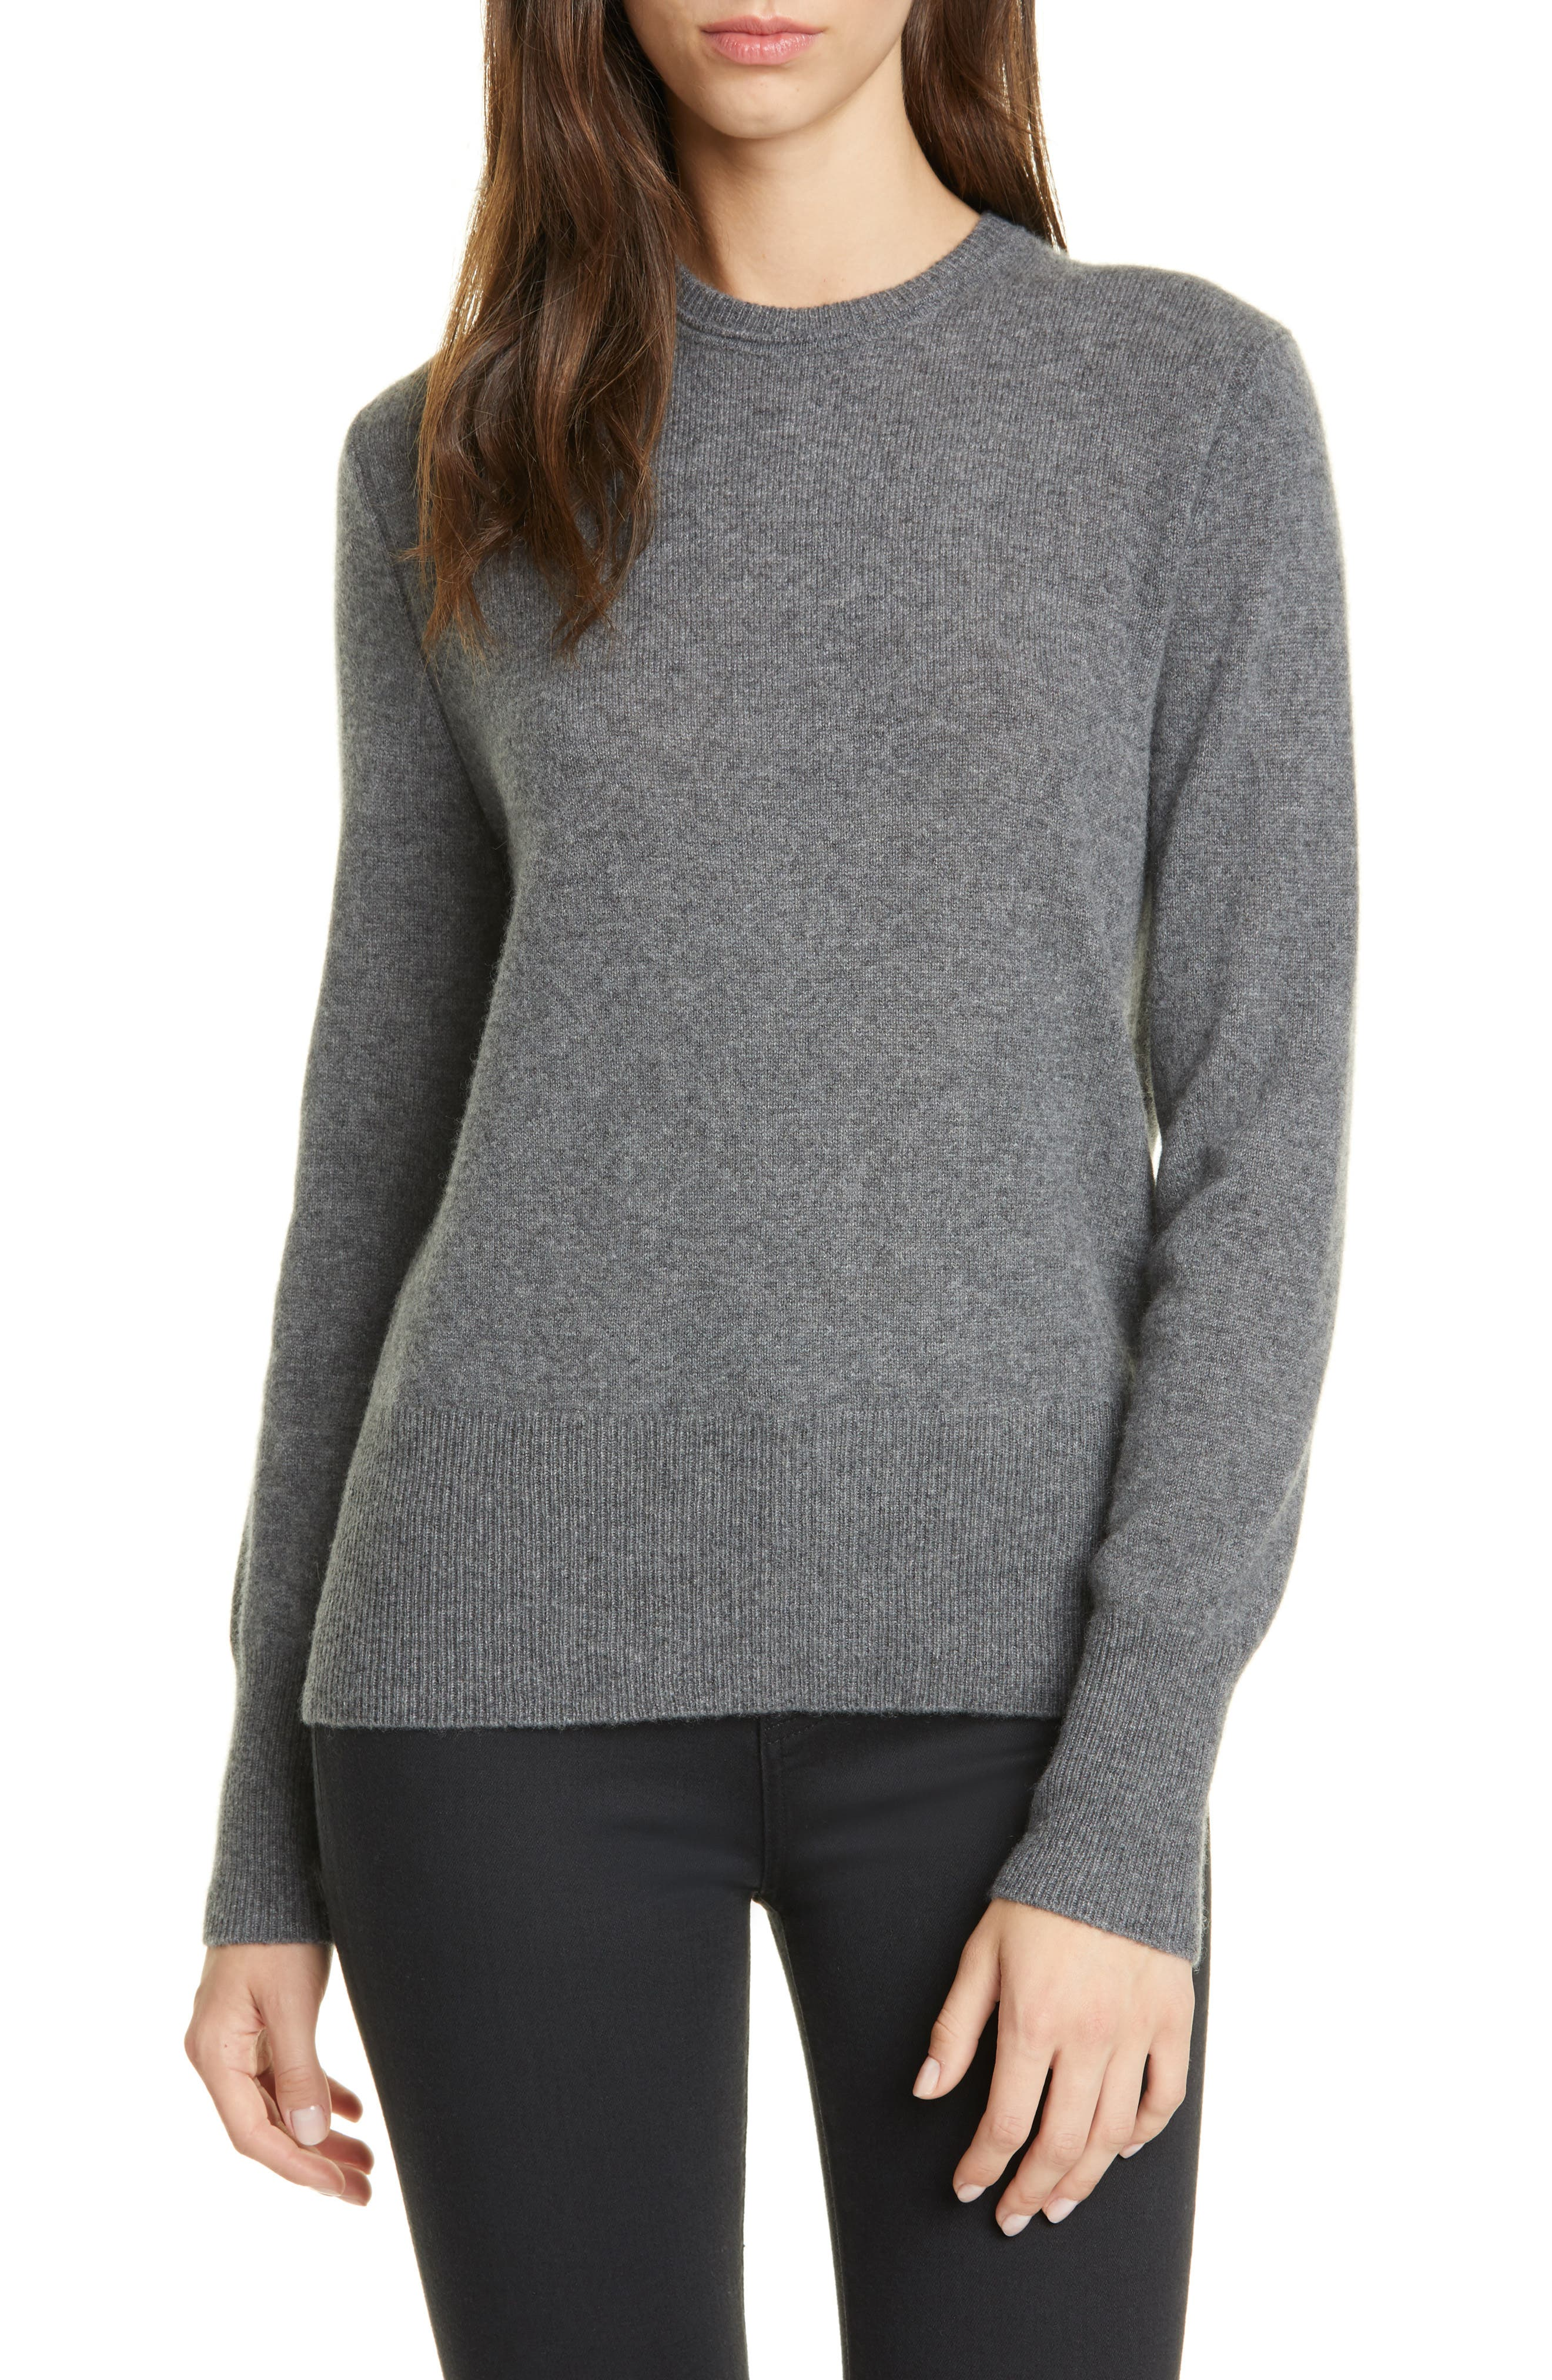 Extended, fine ribbing at the cuffs and hem detail a cashmere sweater that makes a soft, cozy base for your layered-up look. Style Name: Equipment Sanni Cashmere Sweater. Style Number: 5908620. Available in stores.